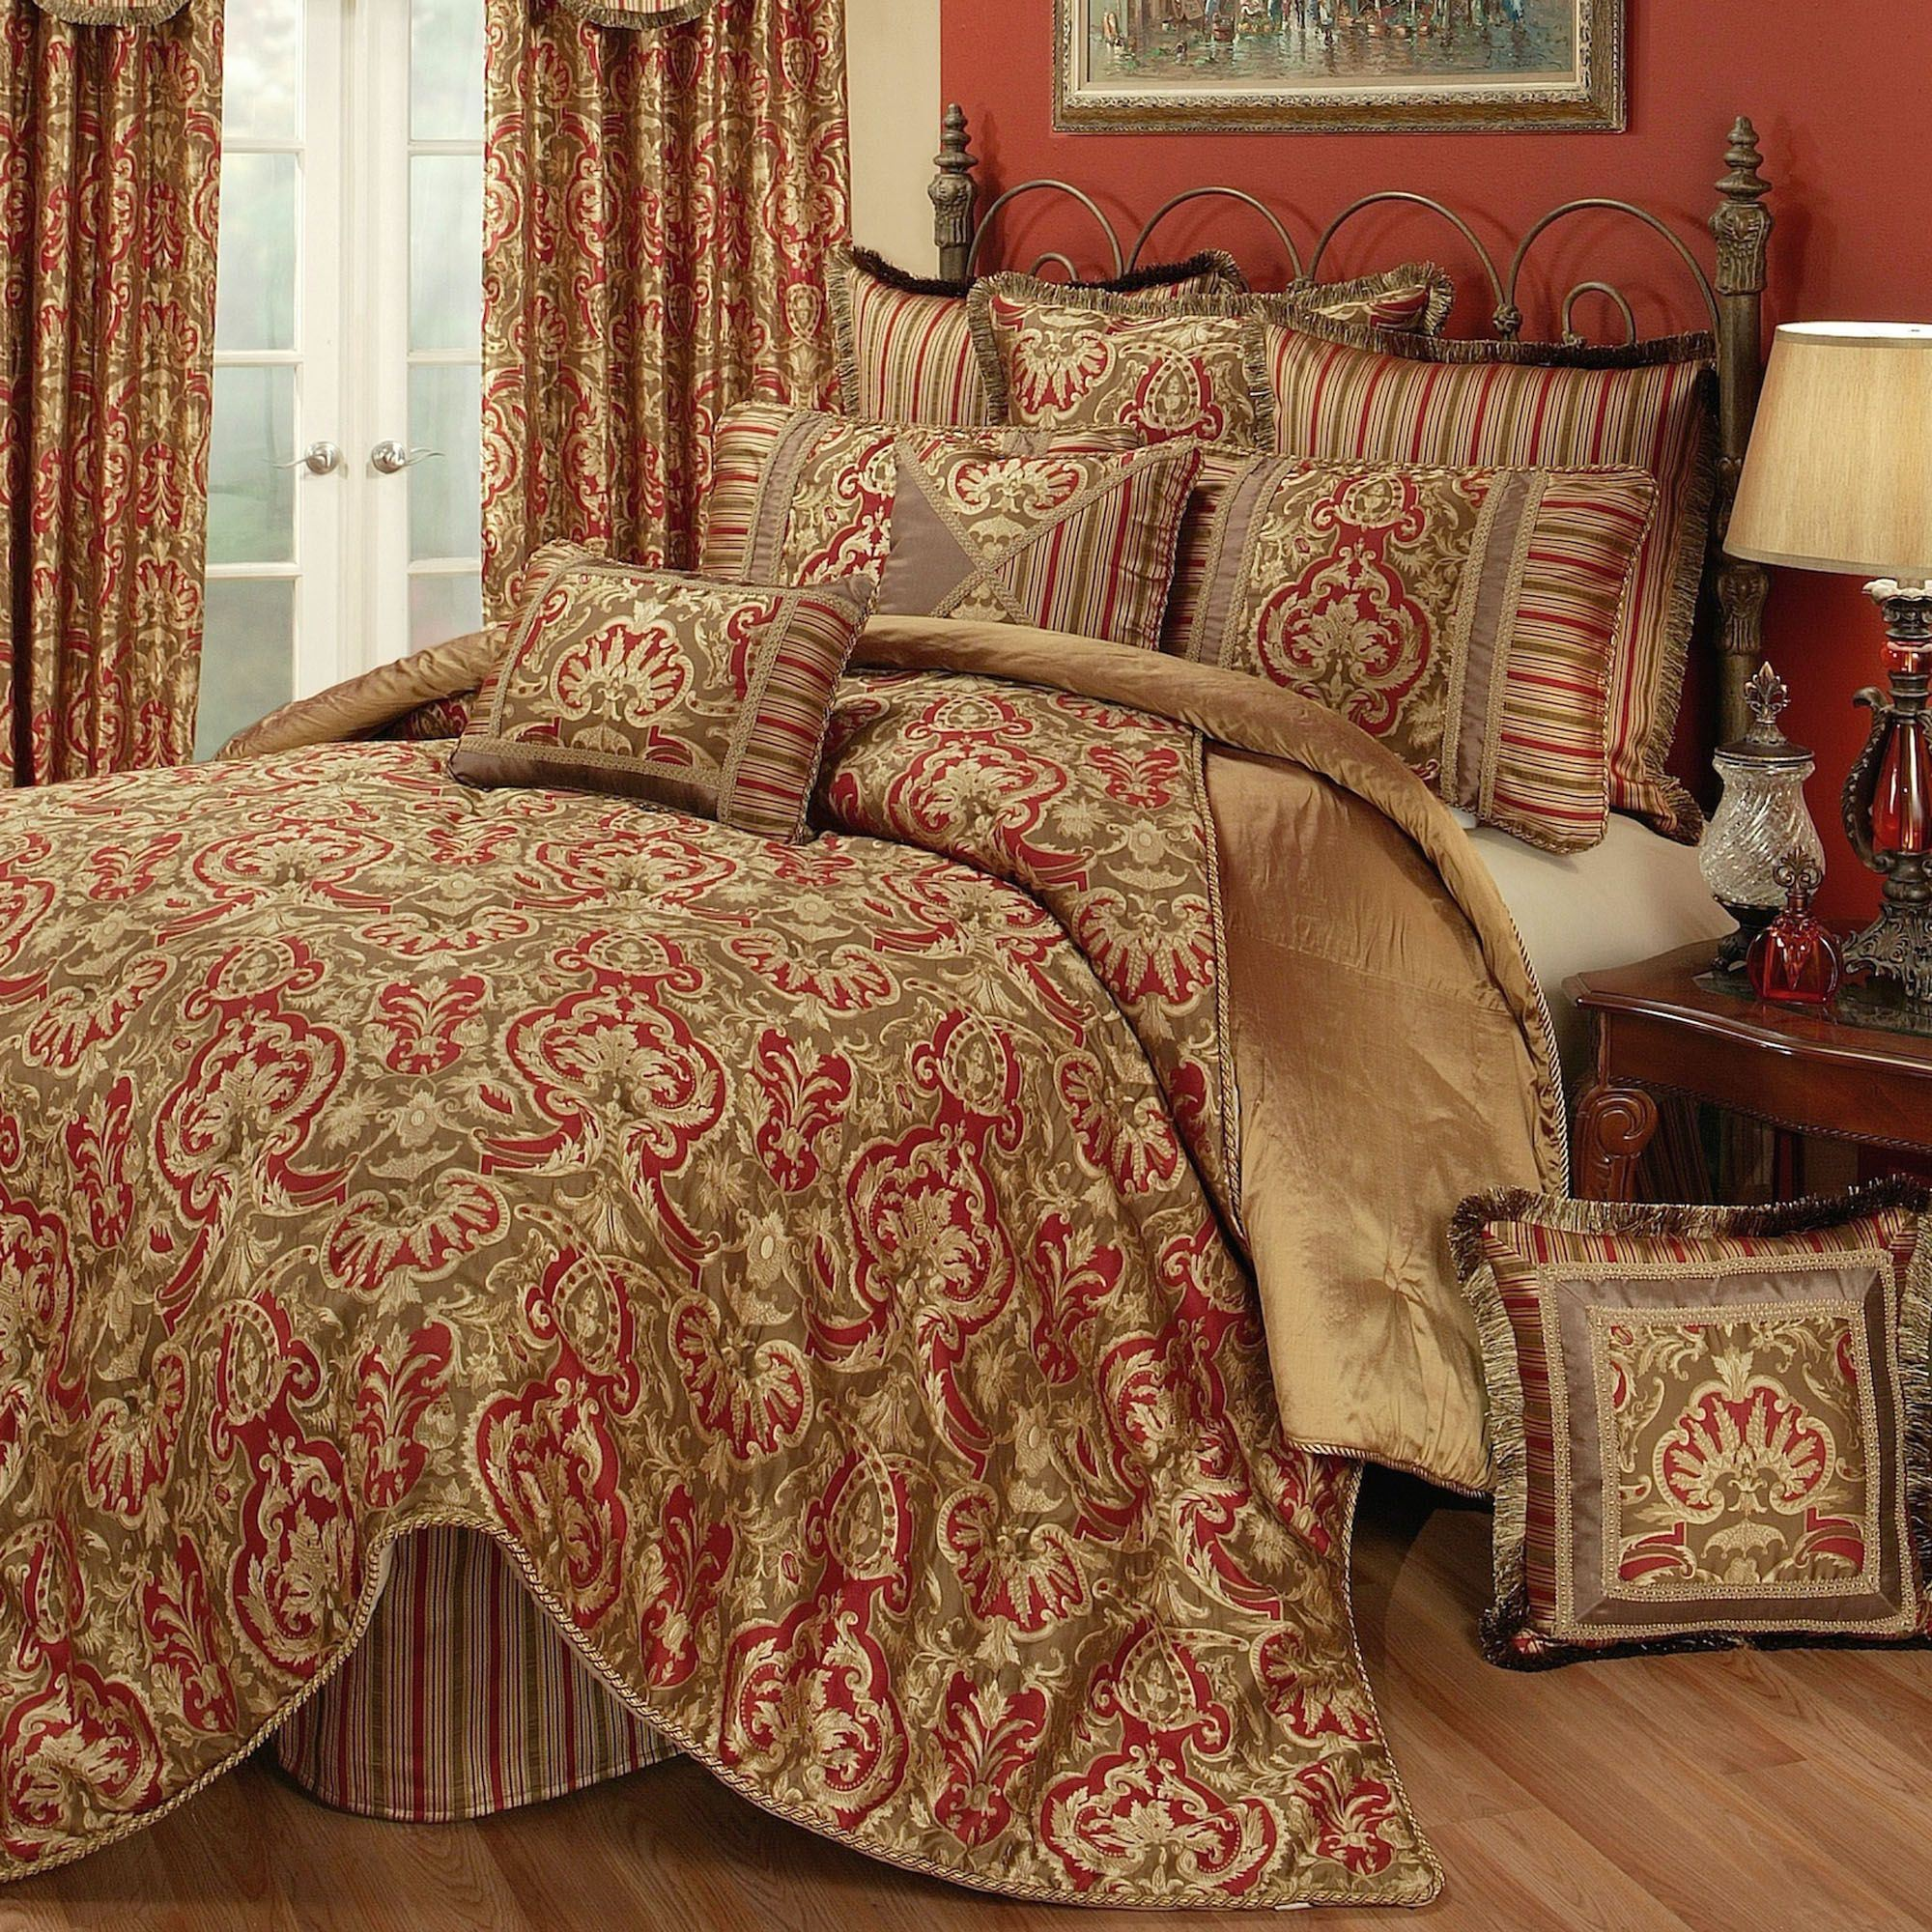 Botticelli italian style comforter bedding - Bedroom sheets and comforter sets ...